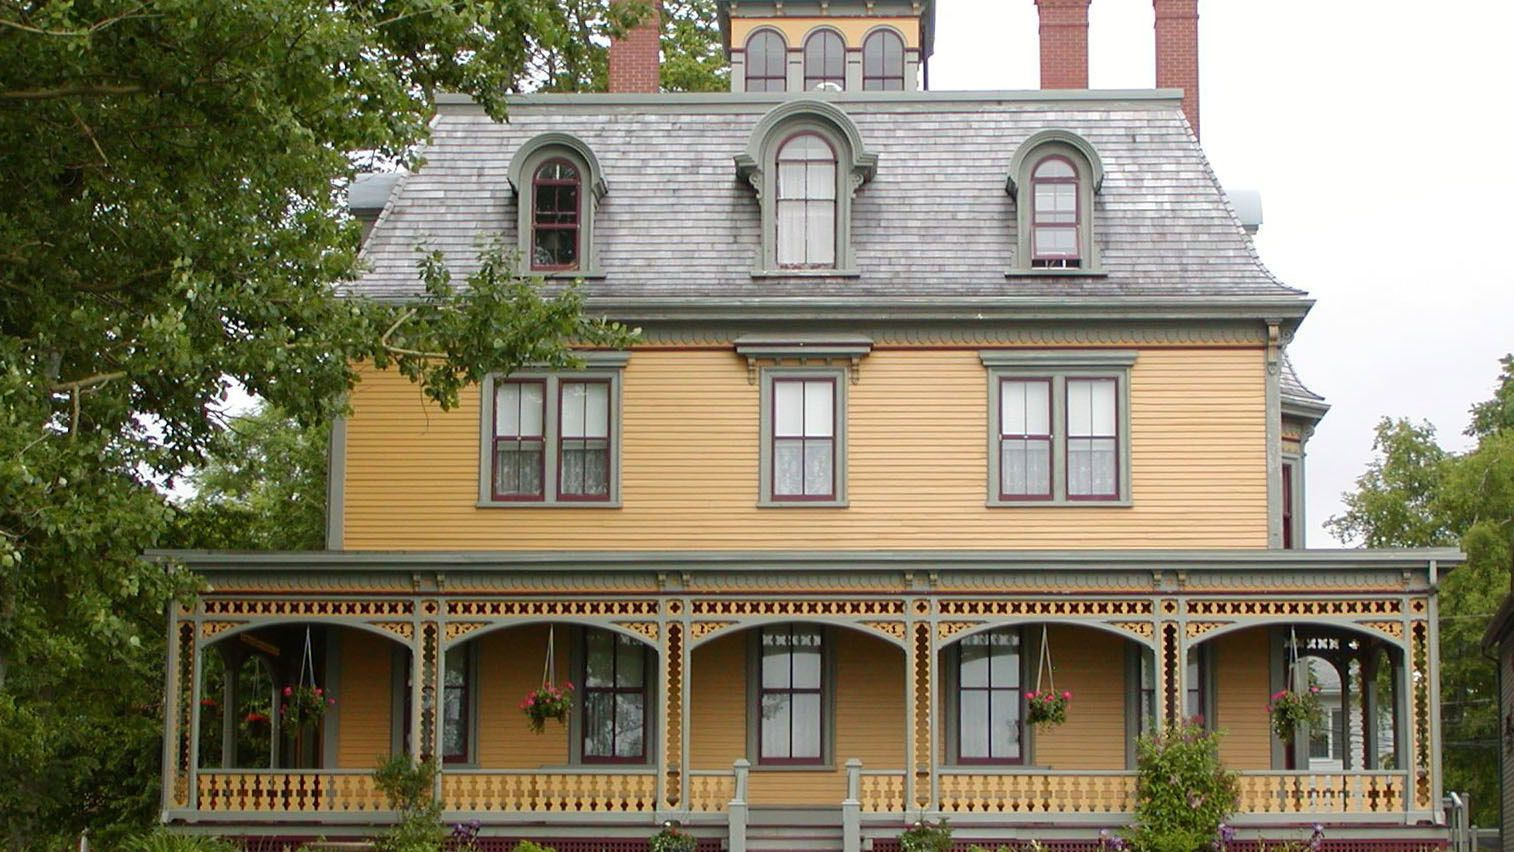 Beaconsfield Historic House features Victorian architecture from Prince Edwards Island